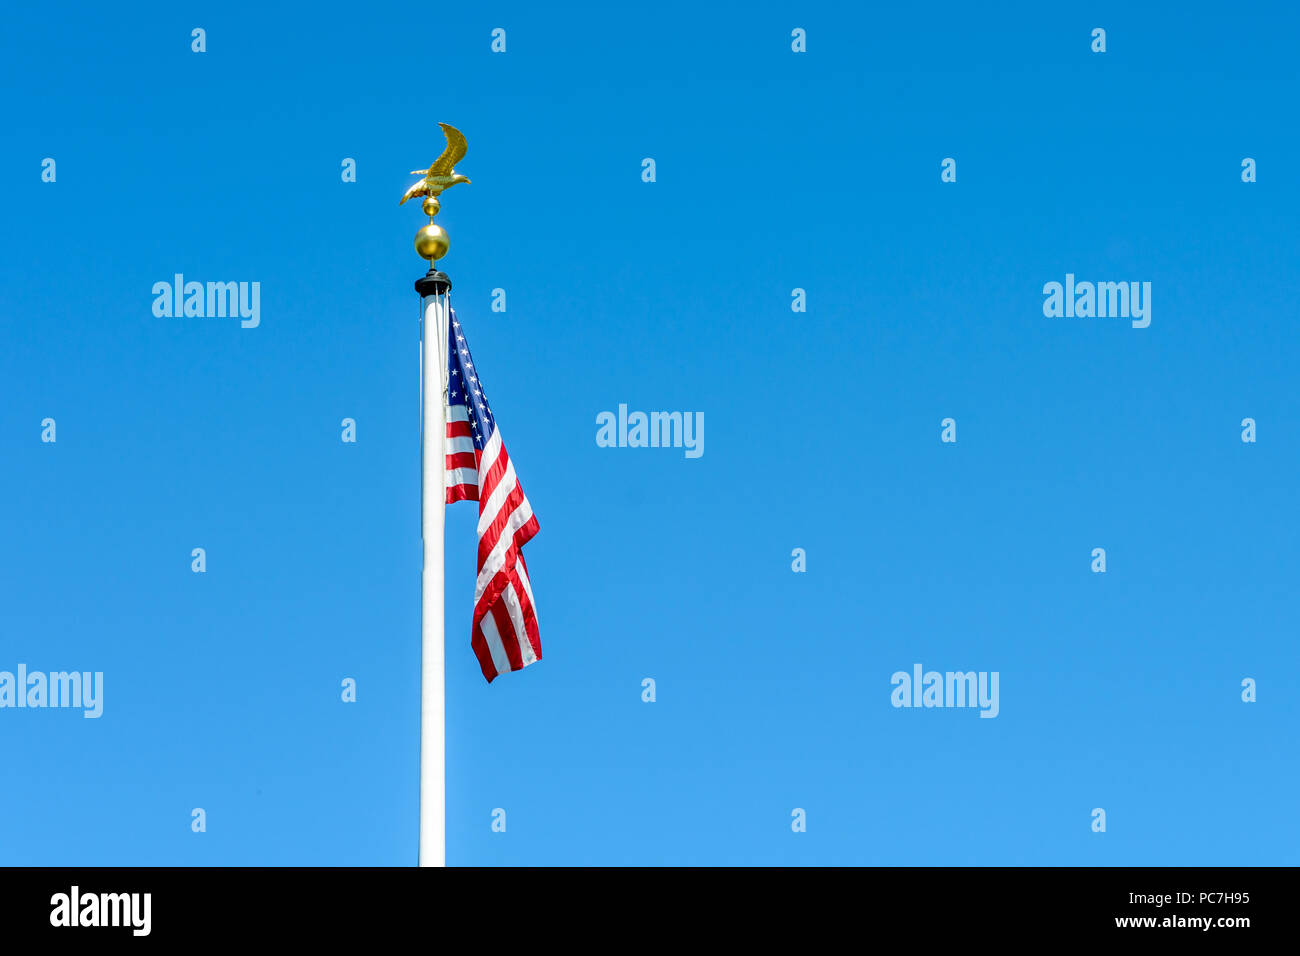 The flag of the United States of America dangling at full-mast on a white pole topped with a golden eagle on ball ornament against deep blue sky. - Stock Image